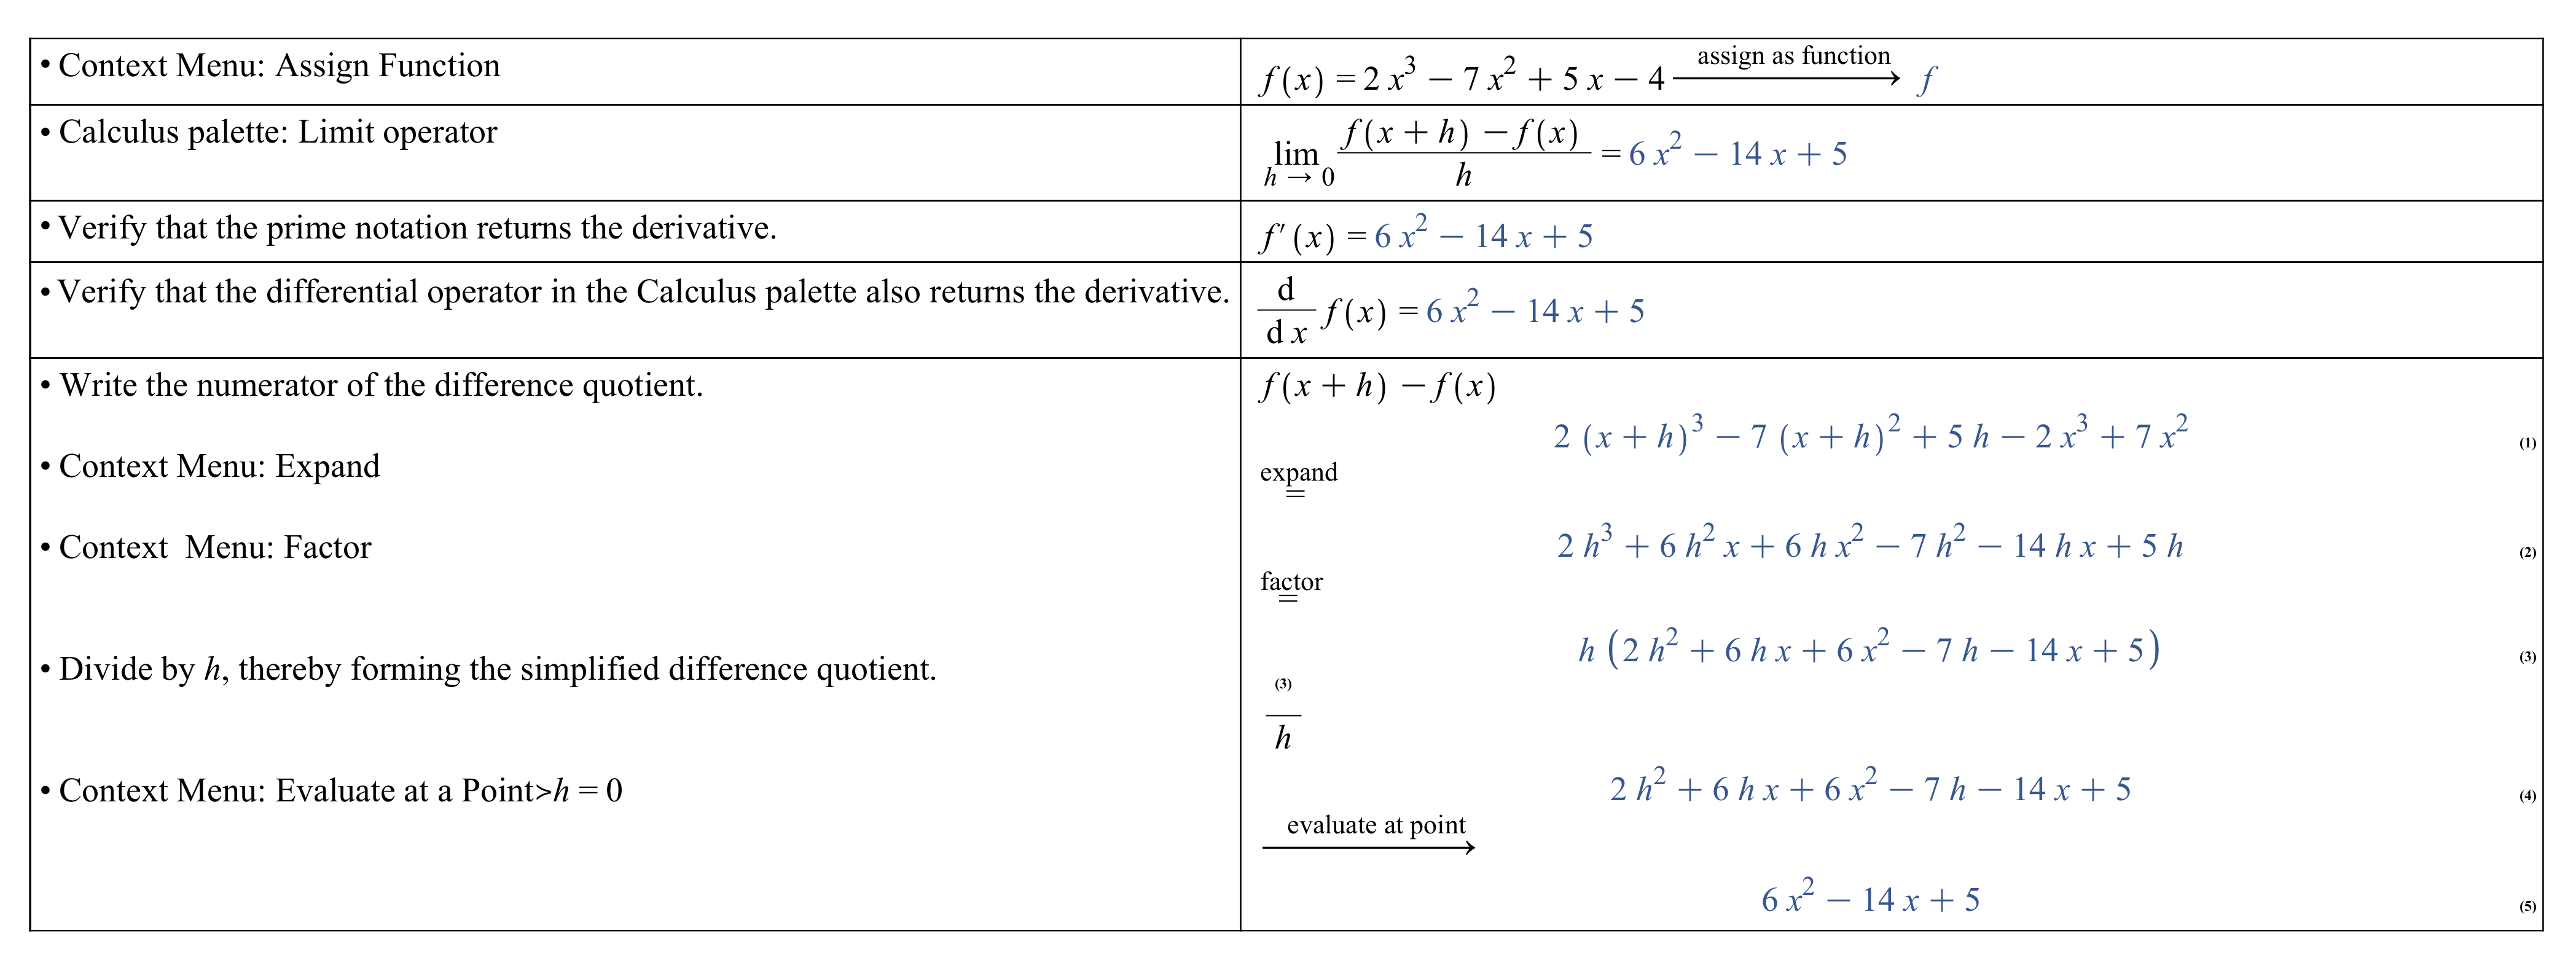 Computer algebra systems: Applying the definition of the derivative to a polynomial